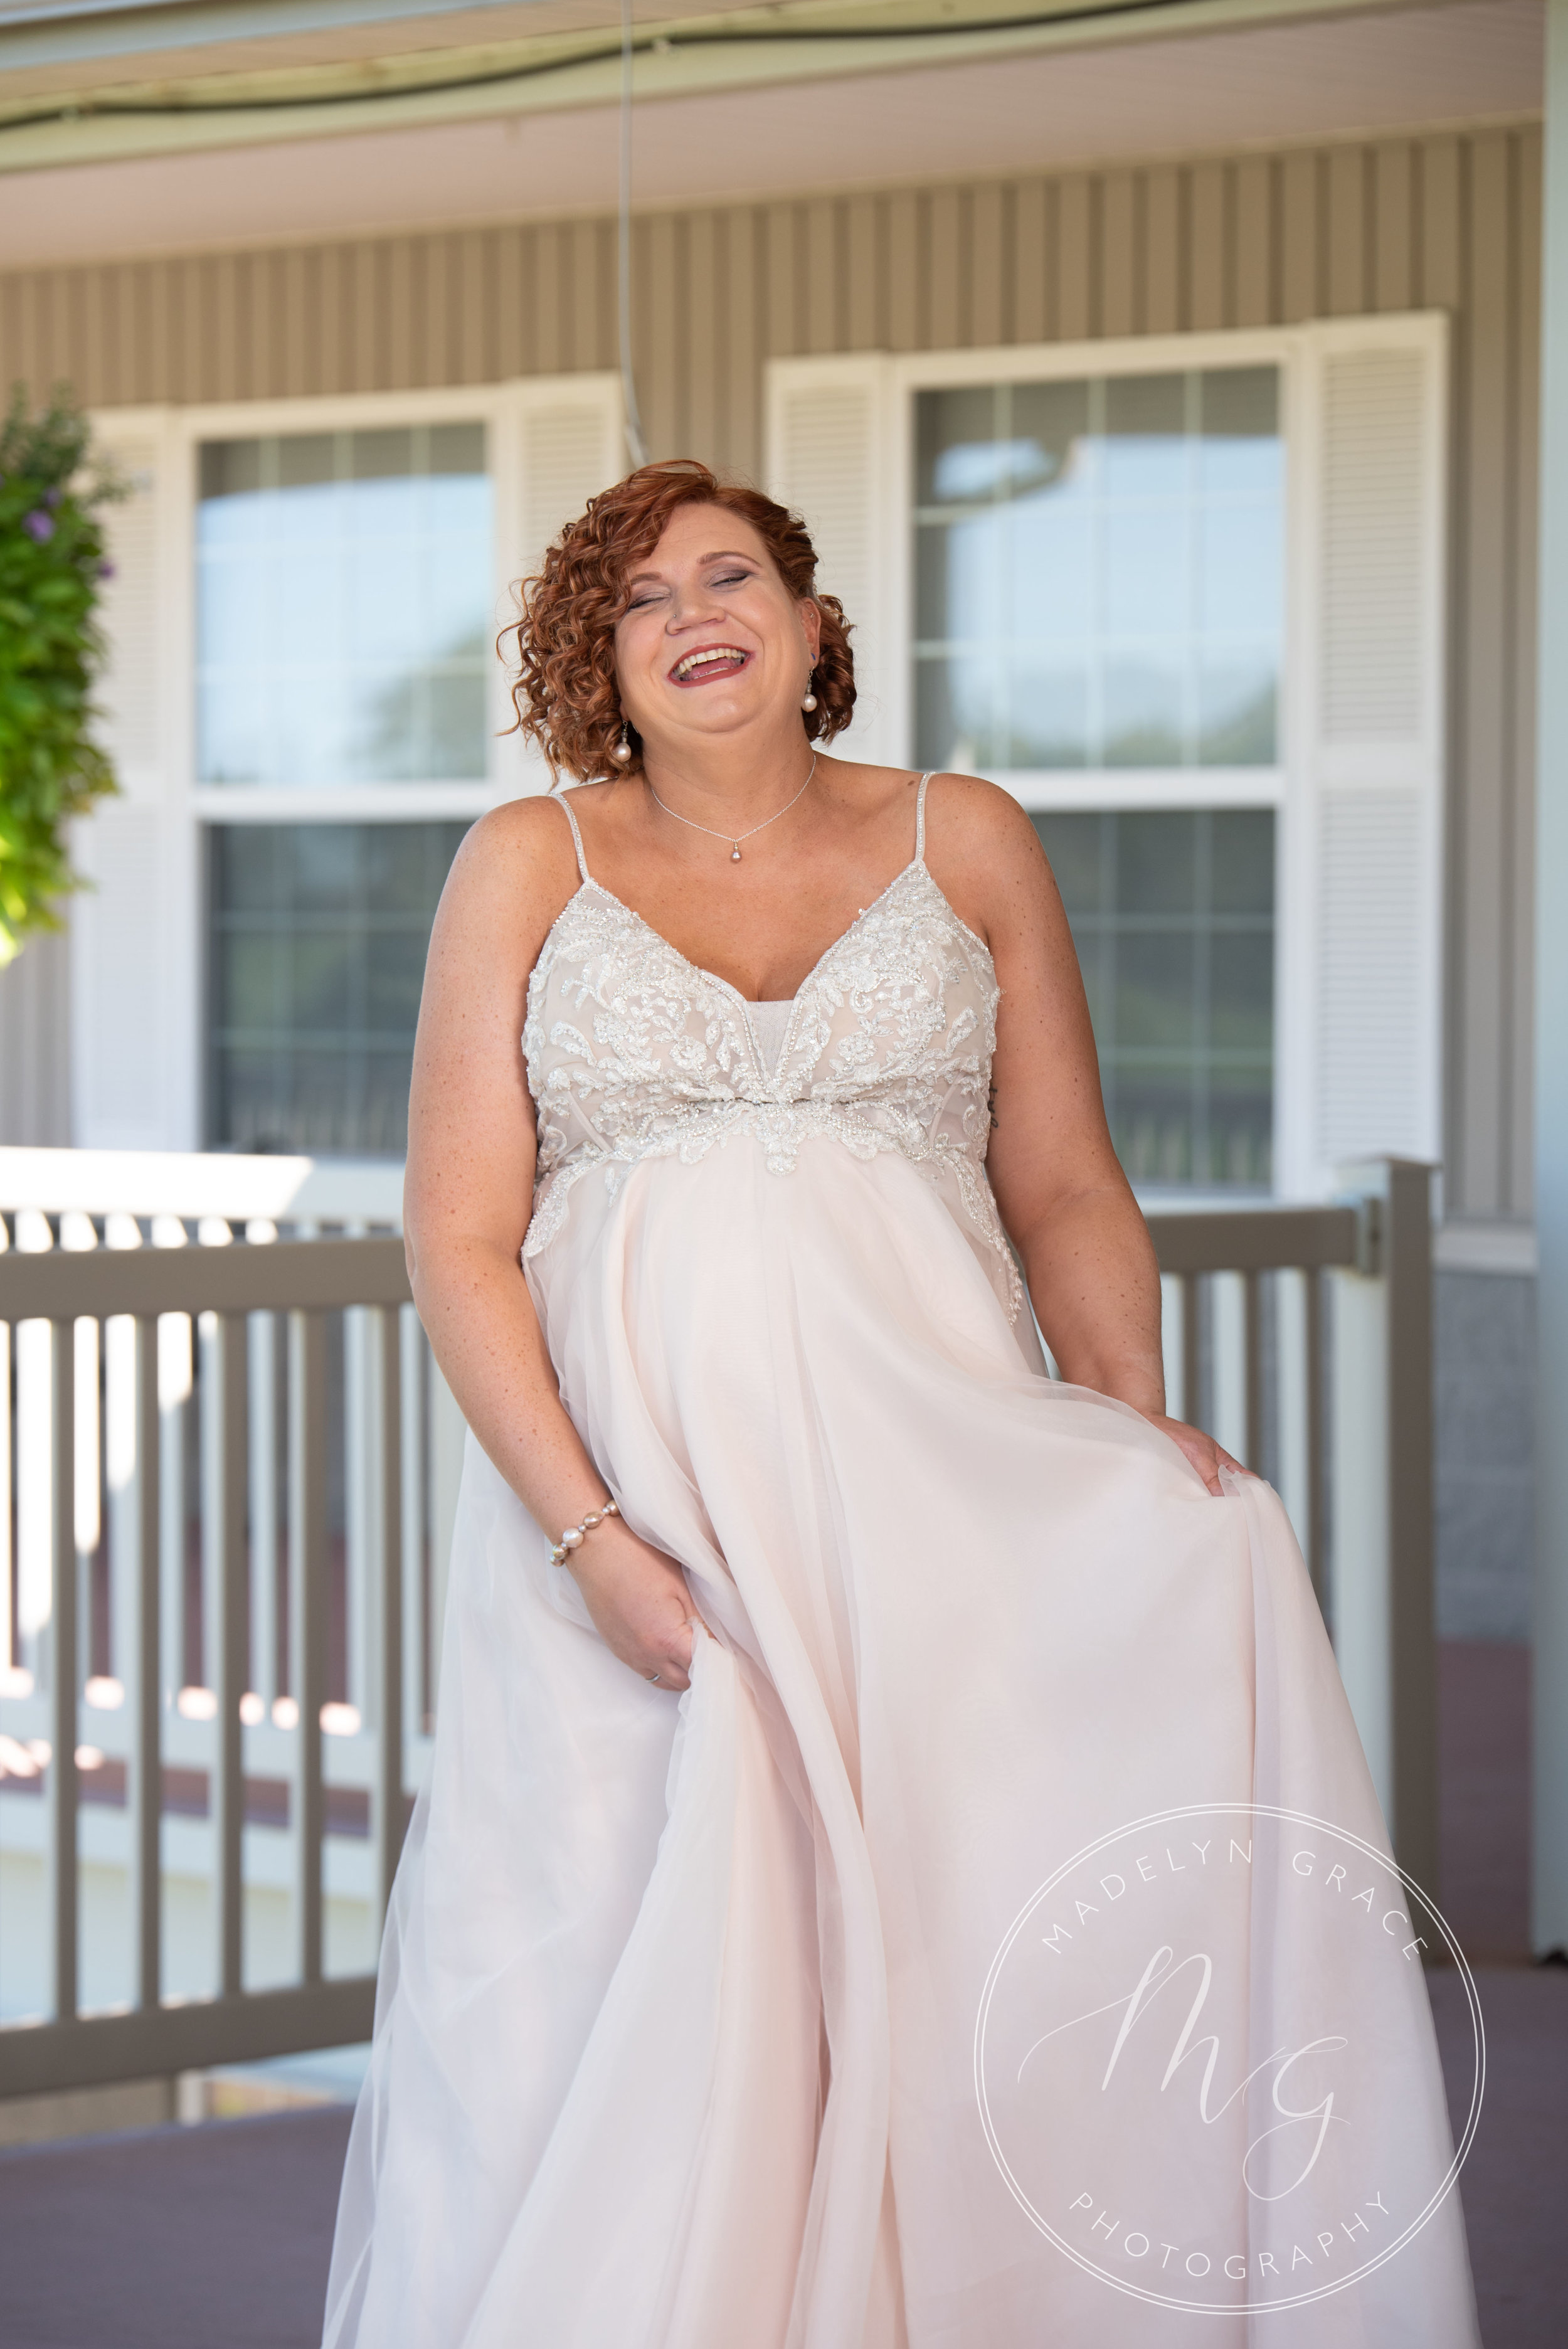 Mid_michigan_wedding_photographer_madelyn_grace_photography_2.jpg